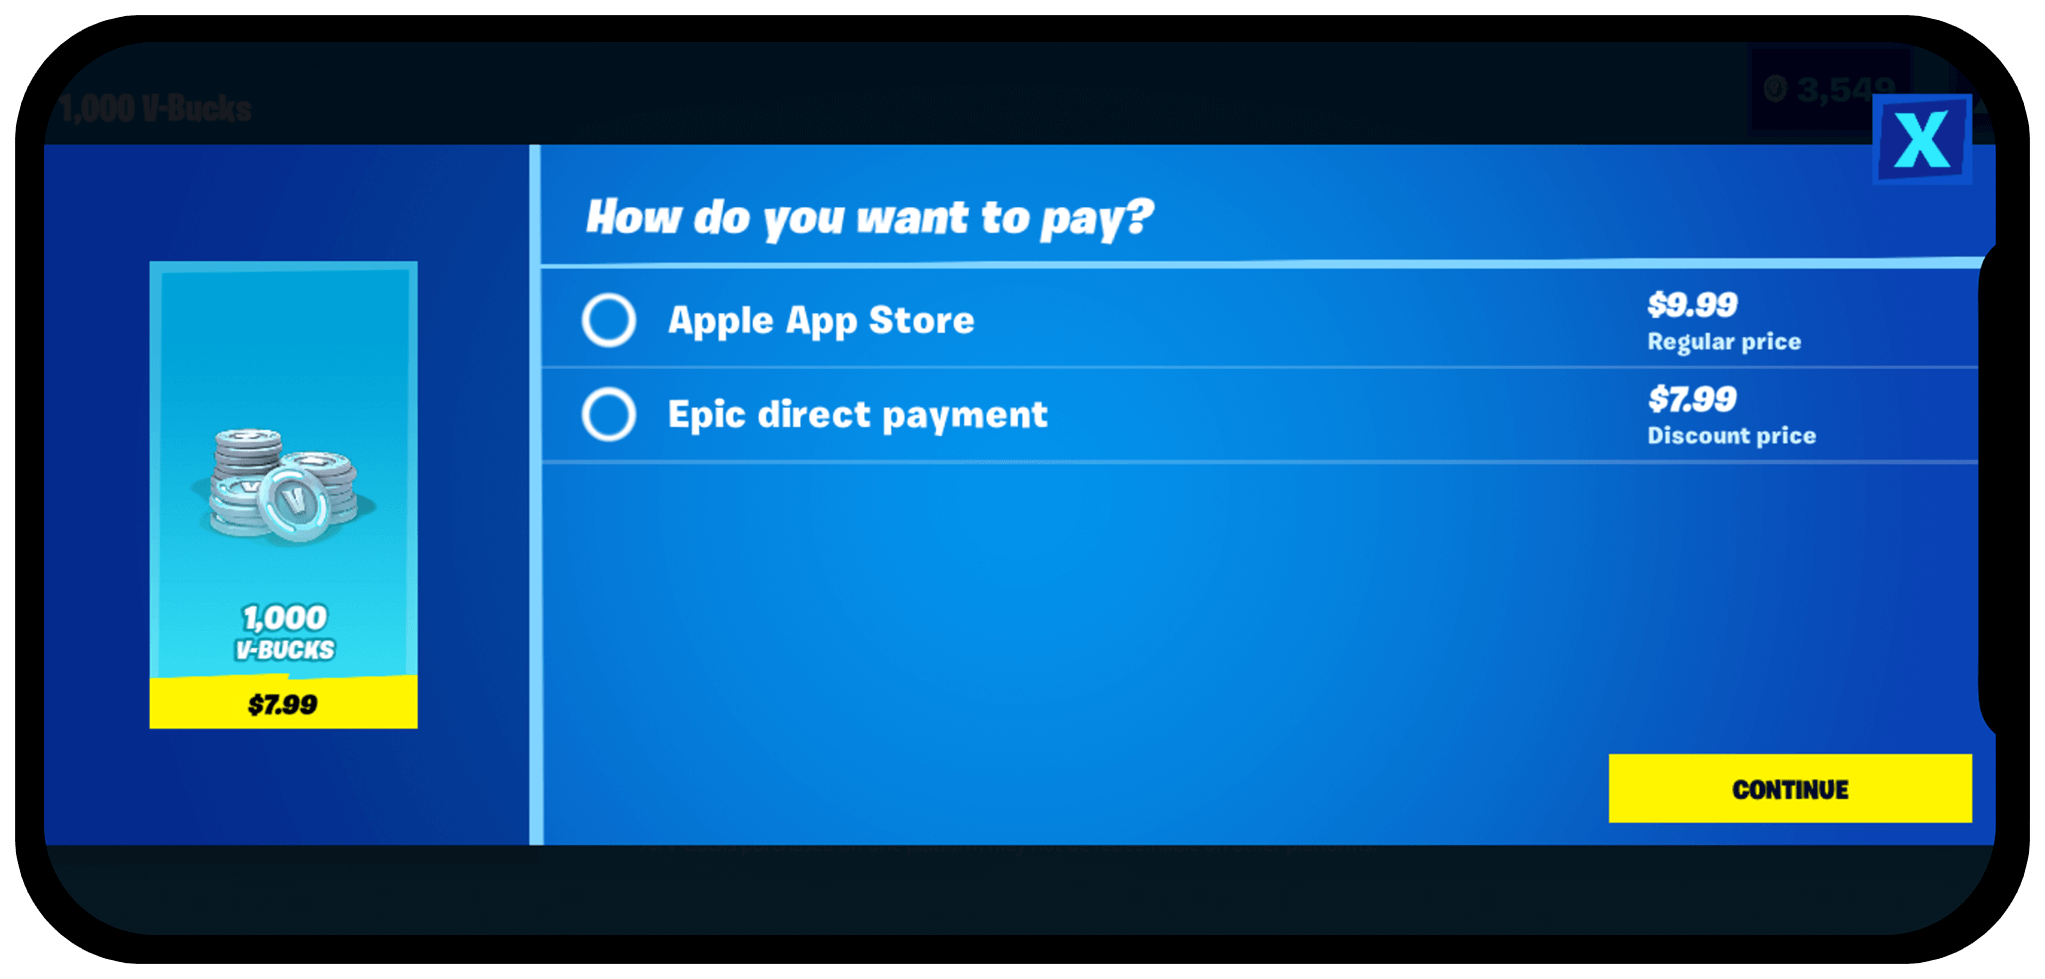 Epic direct pay on Apple App Store